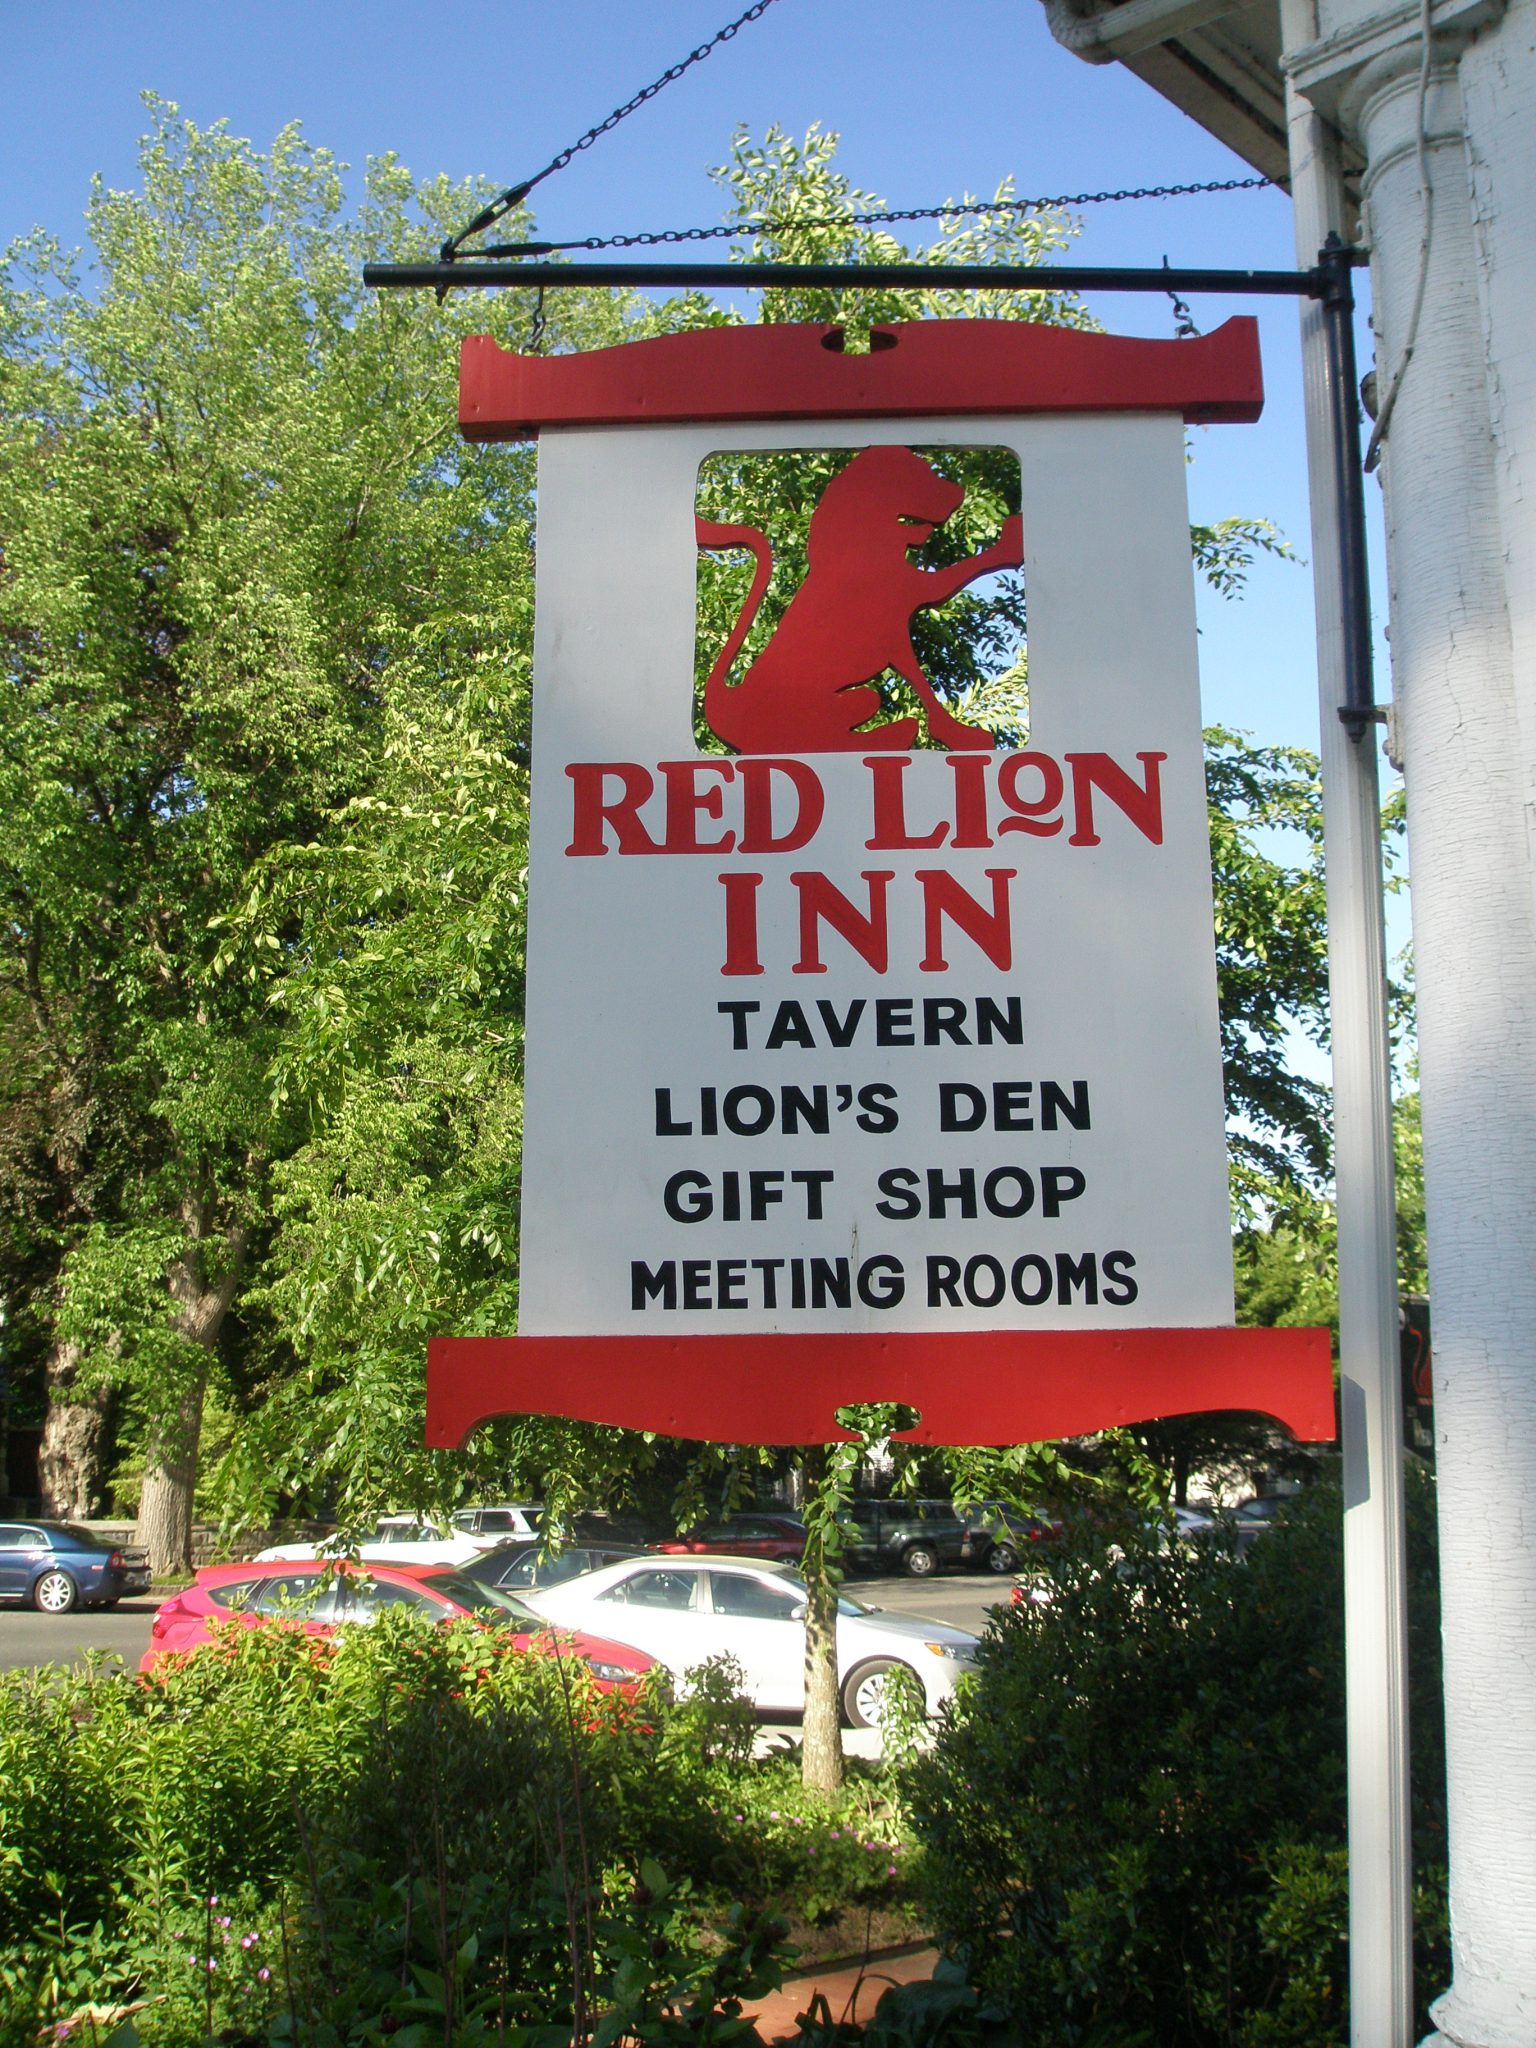 The Red Lion Inn. 30 Main Street, Stockbridge, MA 01262. (413) 298-5545. www.redlioninn.com